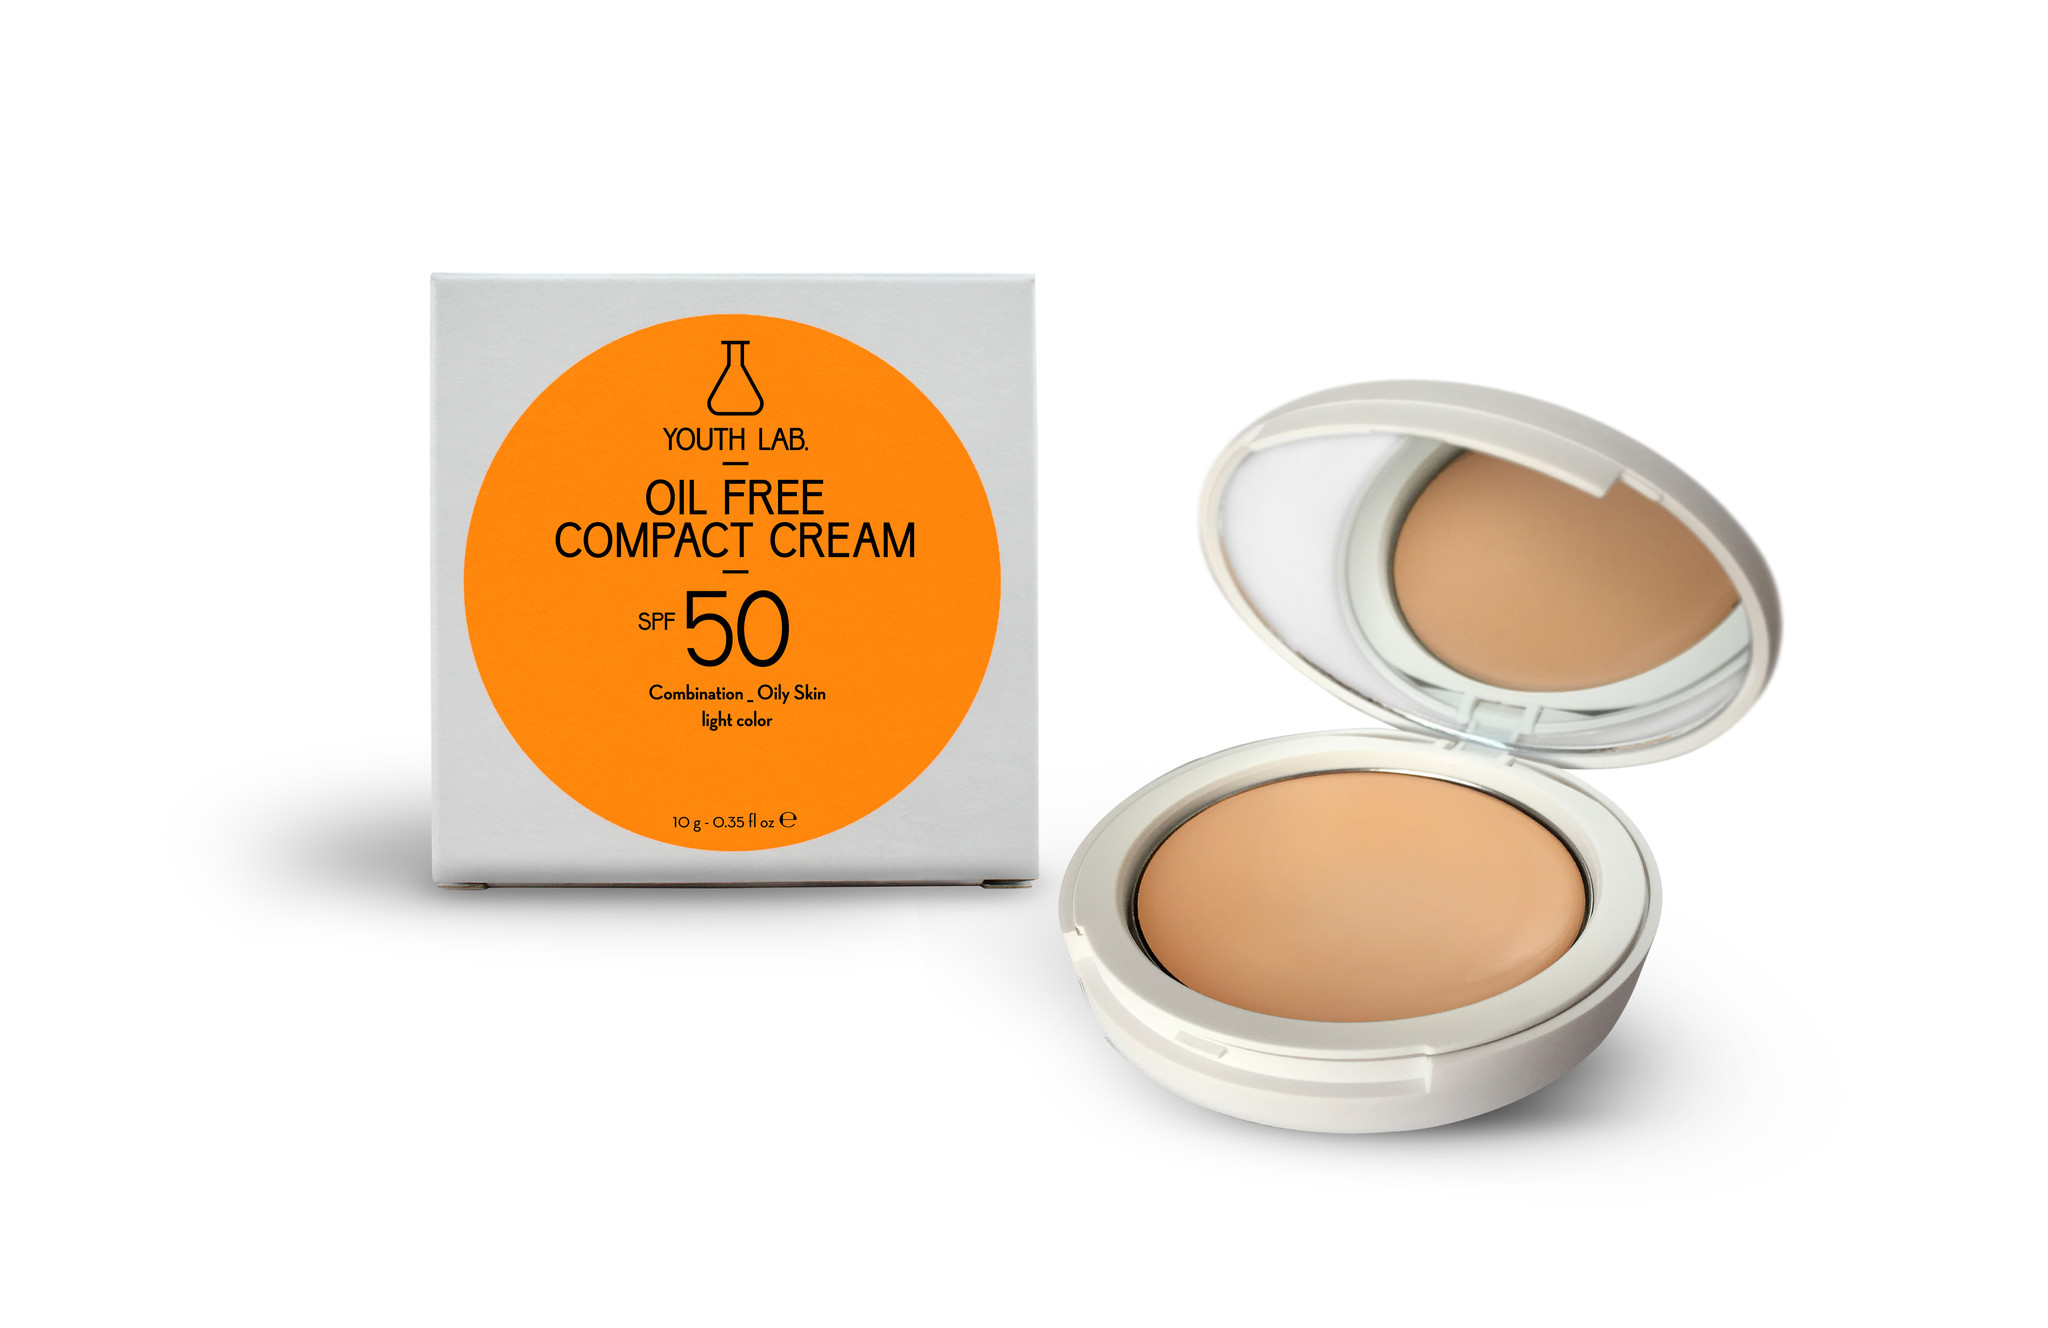 Youth Lab Youth lab Oil free compact cream spf 50 Light color 10g